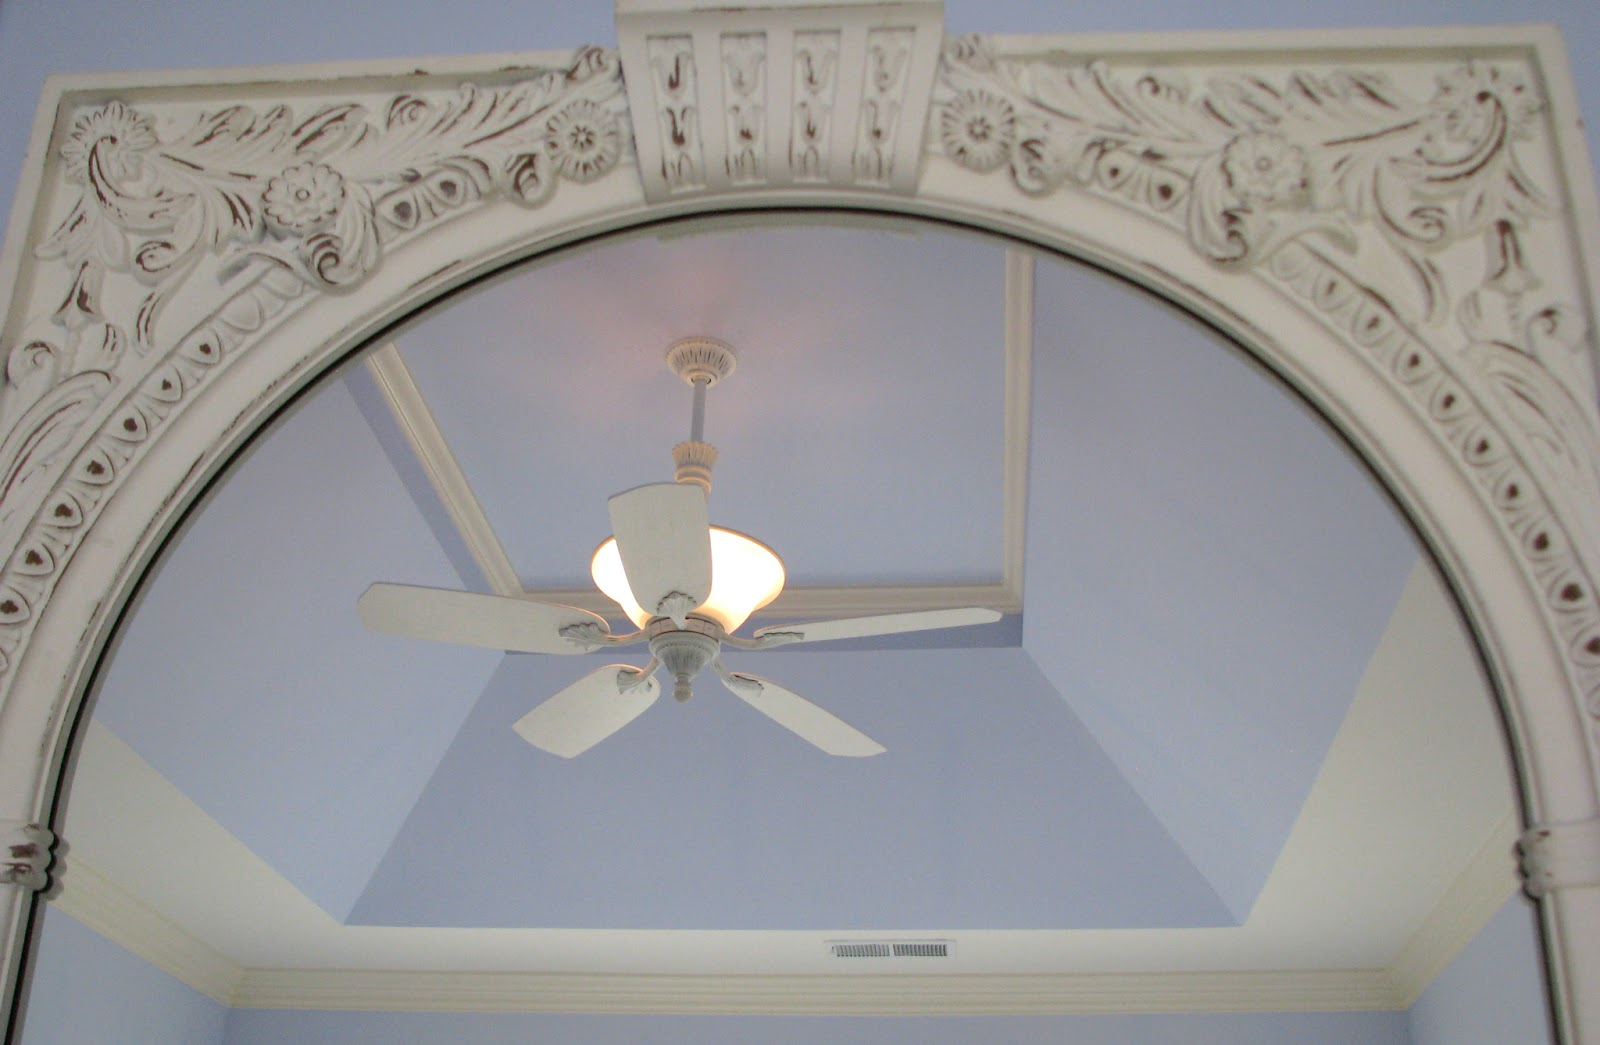 Winter white decorative ceiling fan in master bedroom with trey ceiling